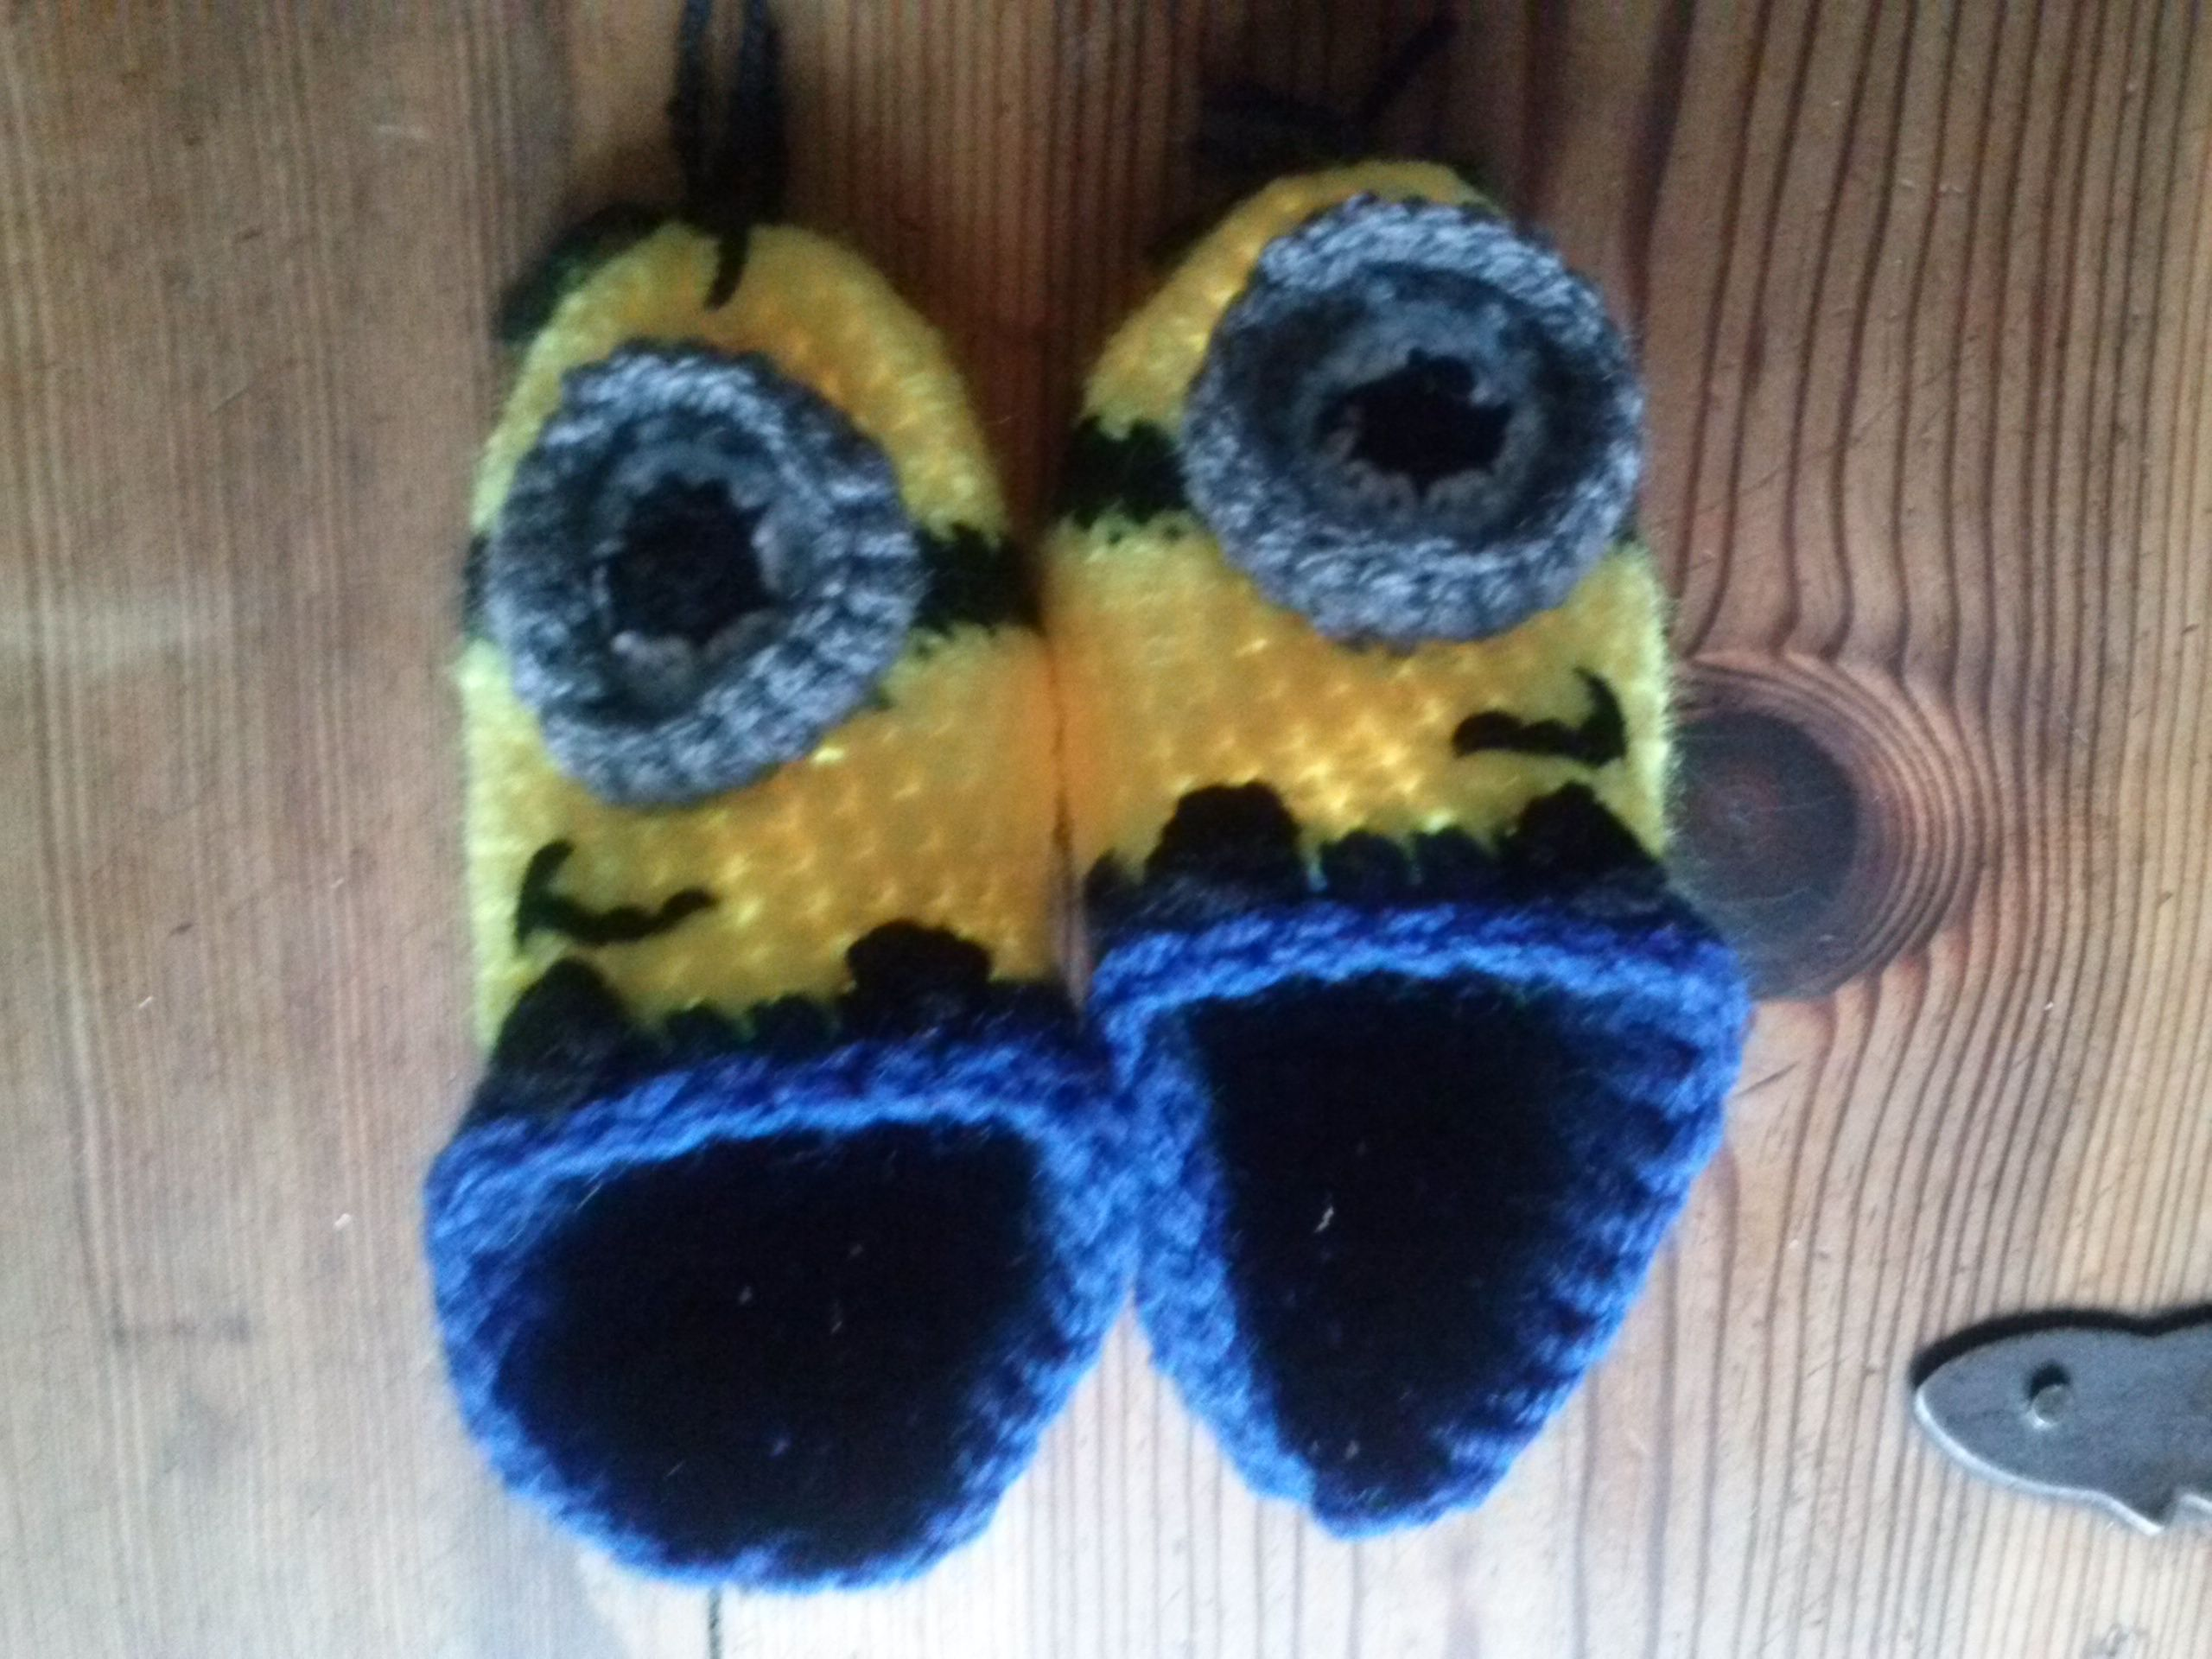 Free Crochet Pattern For Baby Minion Slippers : Crochet minion baby slippers crochet patterns Pinterest